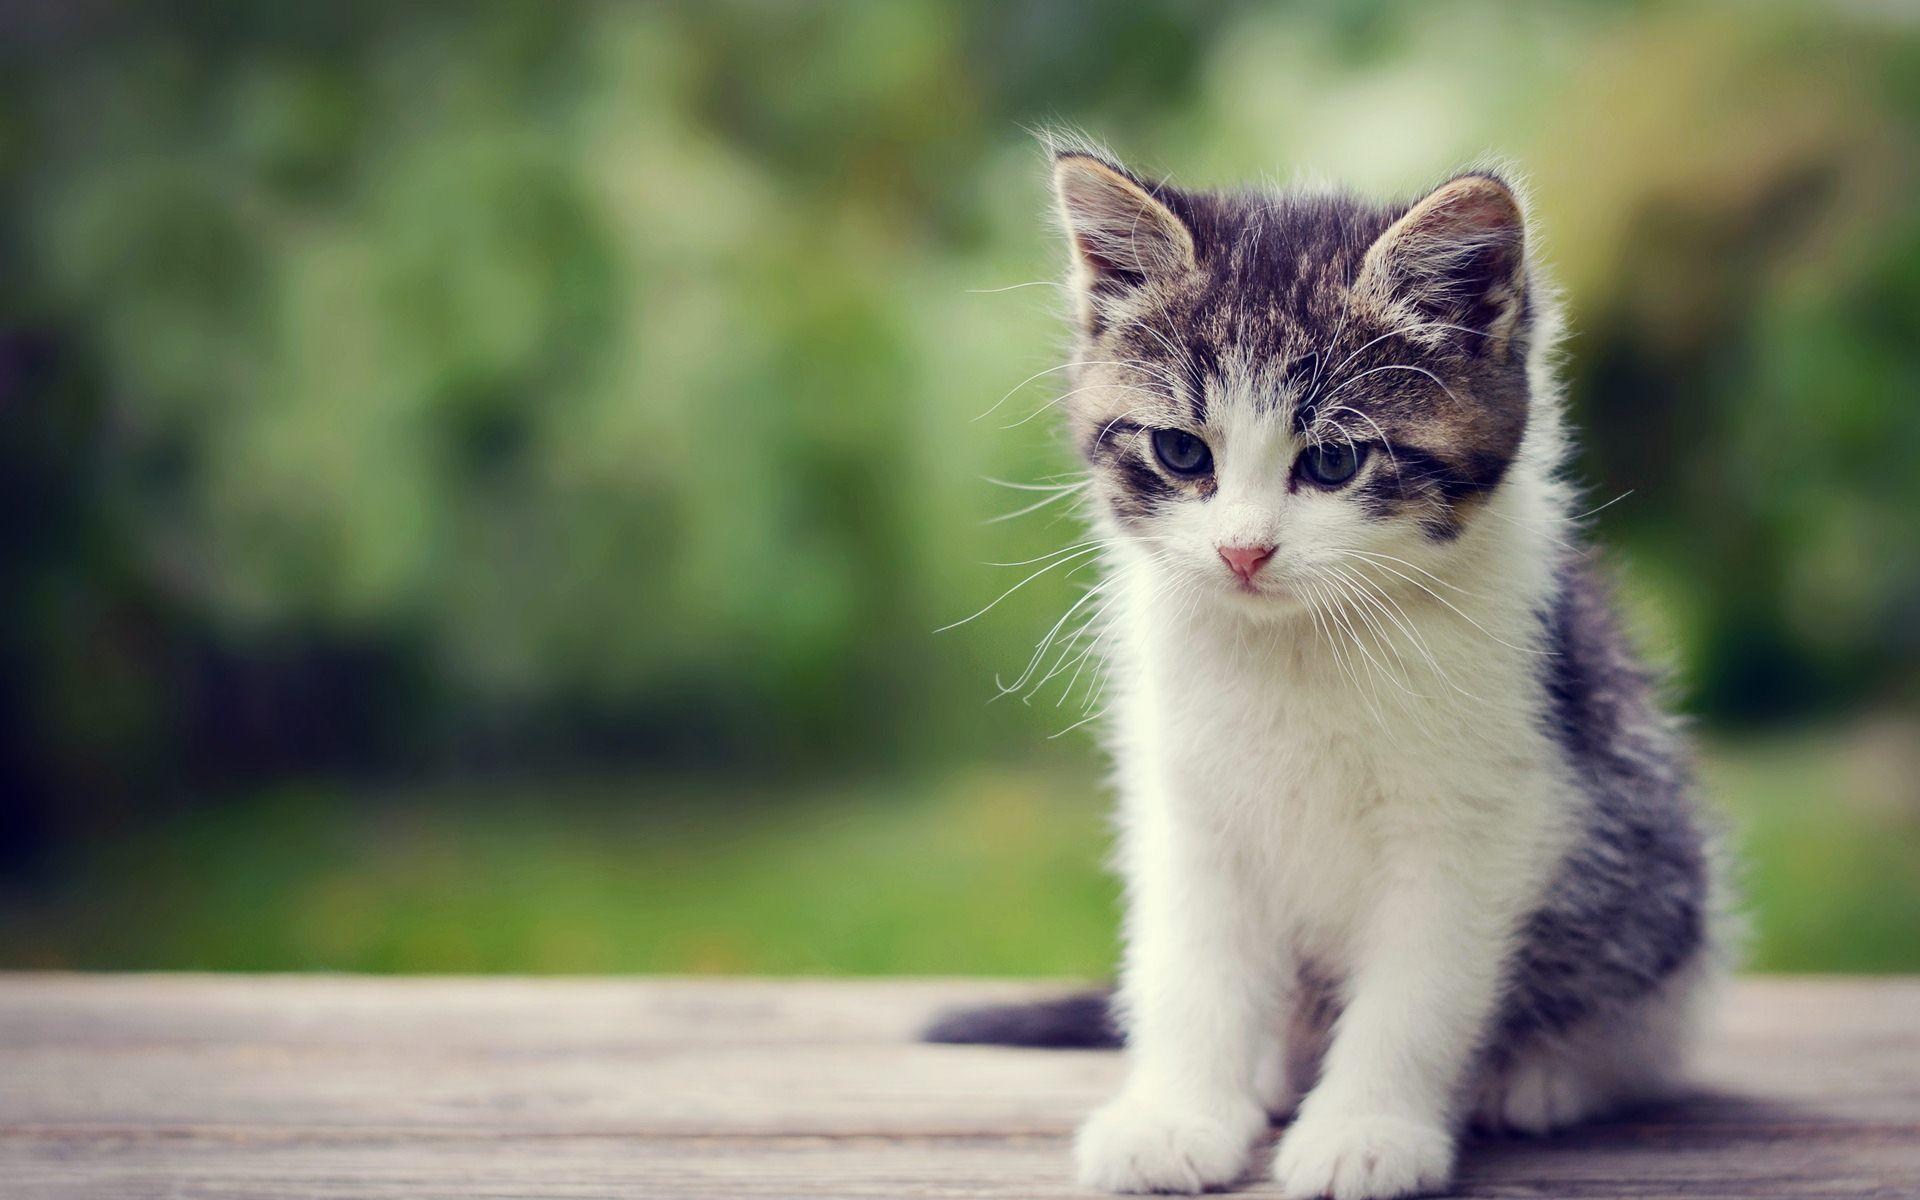 Cute Kittens Wallpapers - Wallpaper Cave